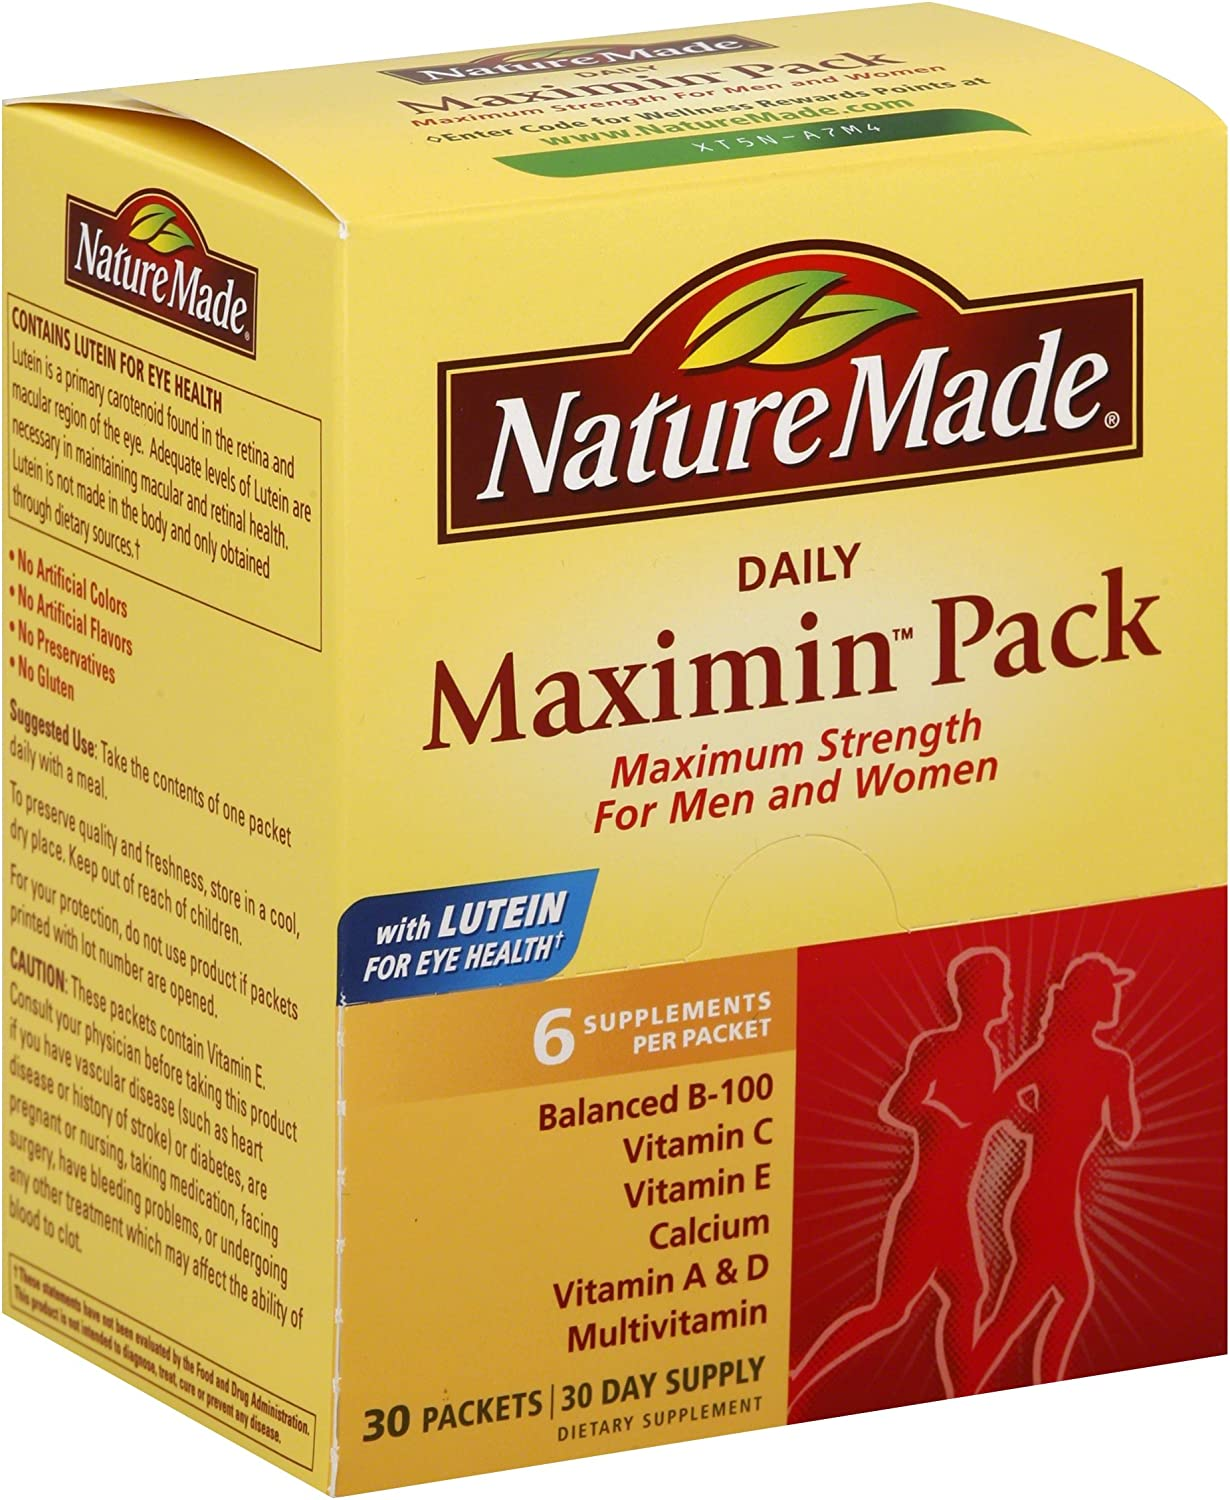 Nature Made Maximin Pack, 30 Packets Pack of 2